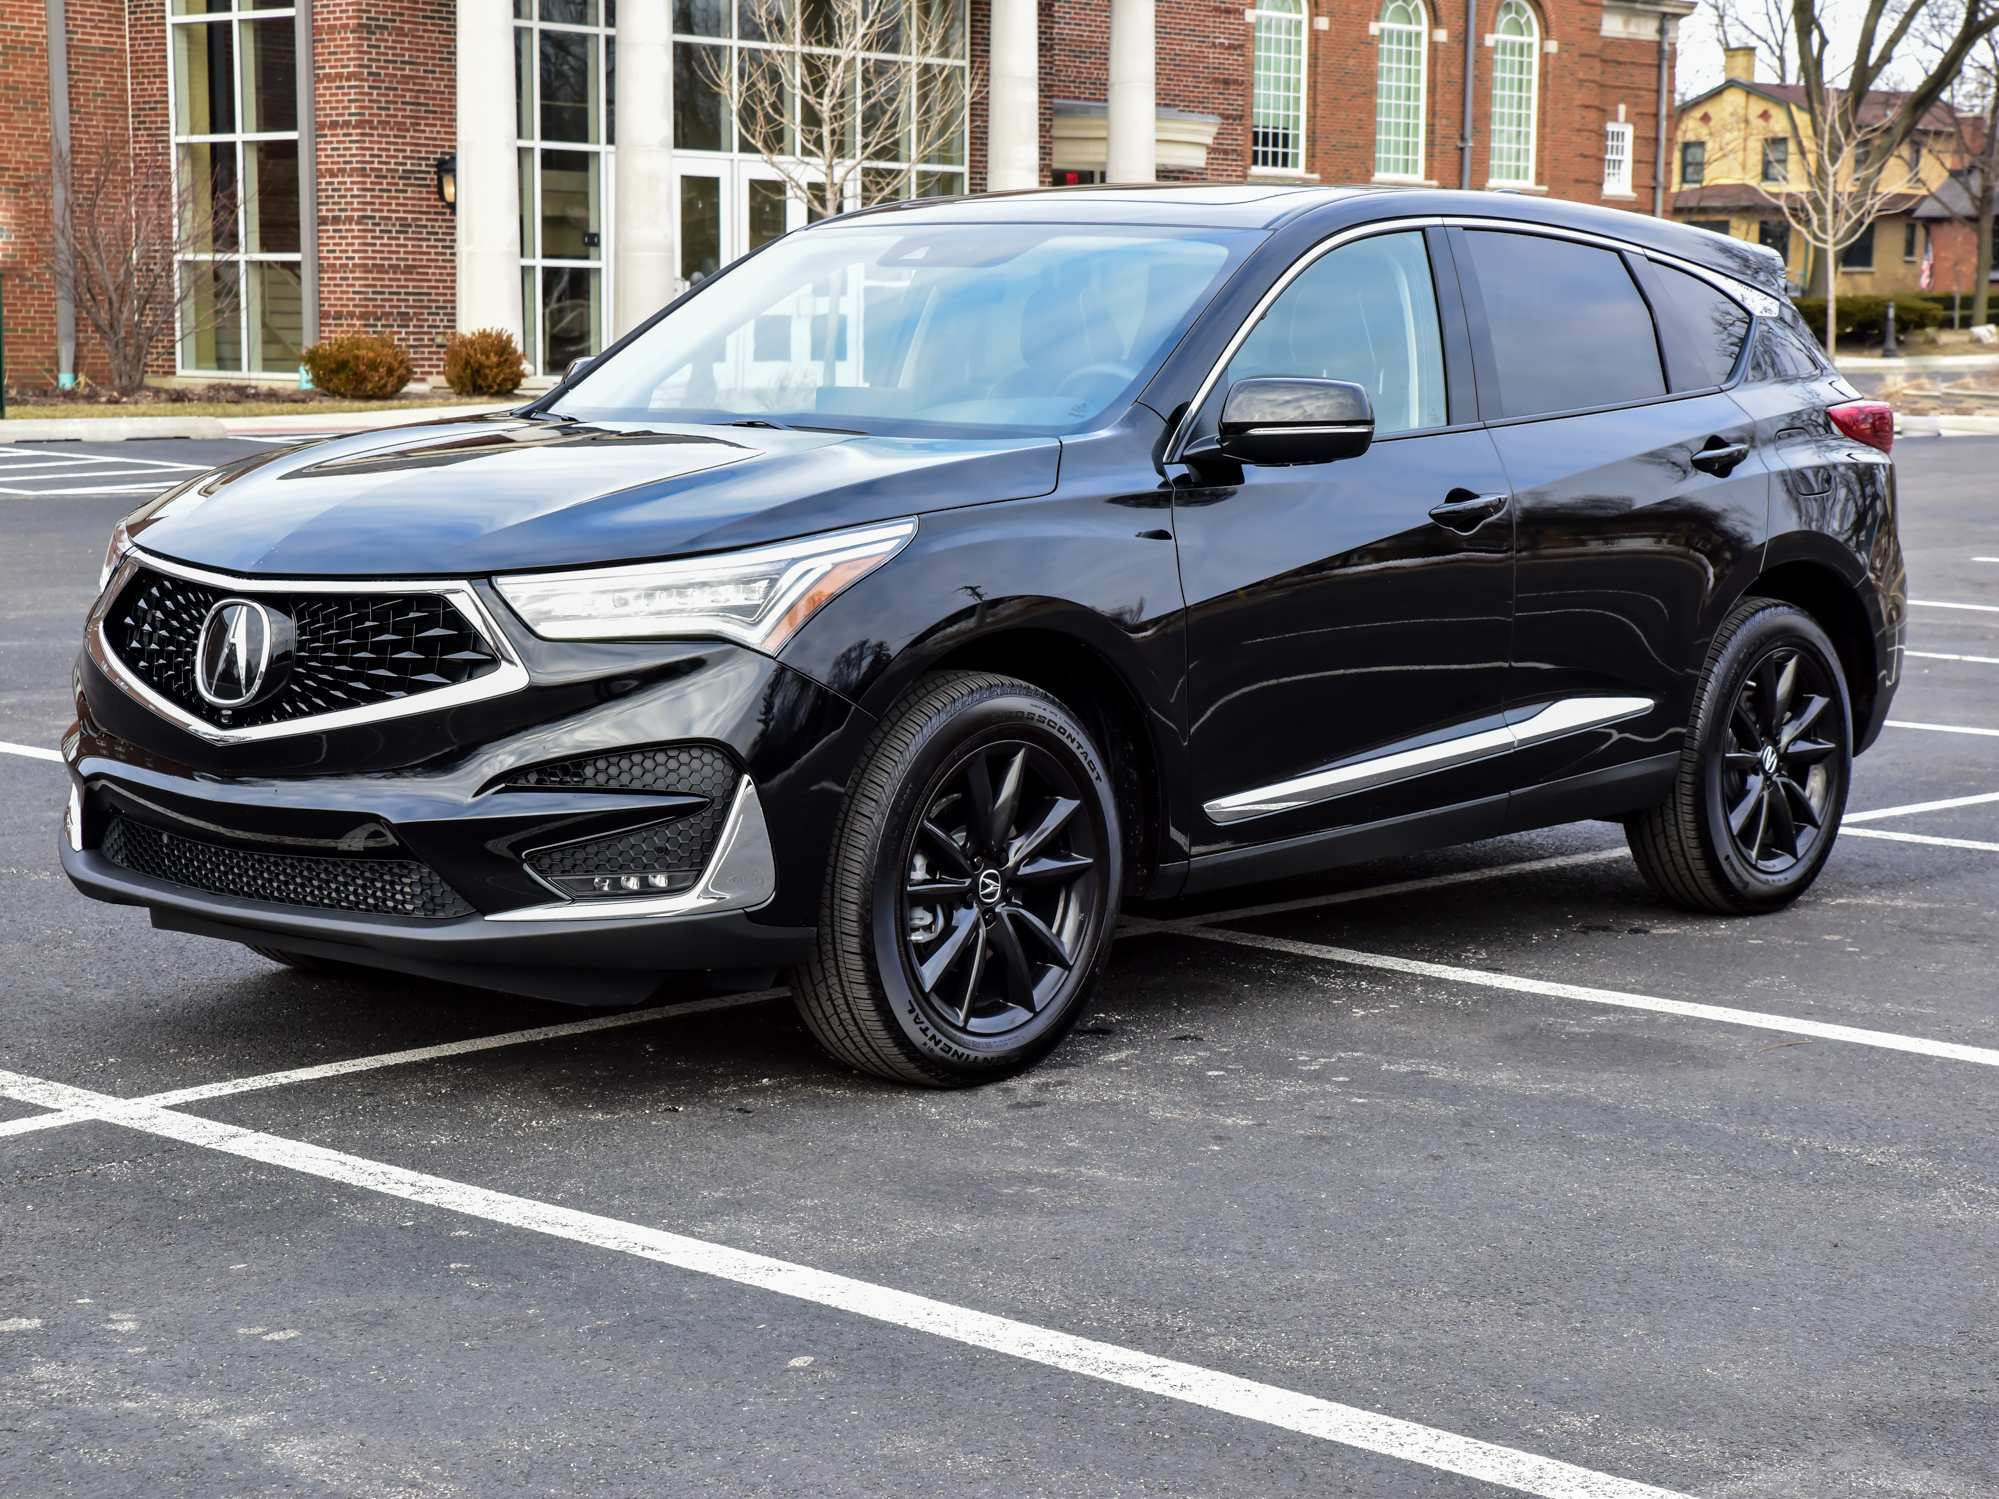 40 New 2019 Acura Rdx Images New Model And Performance